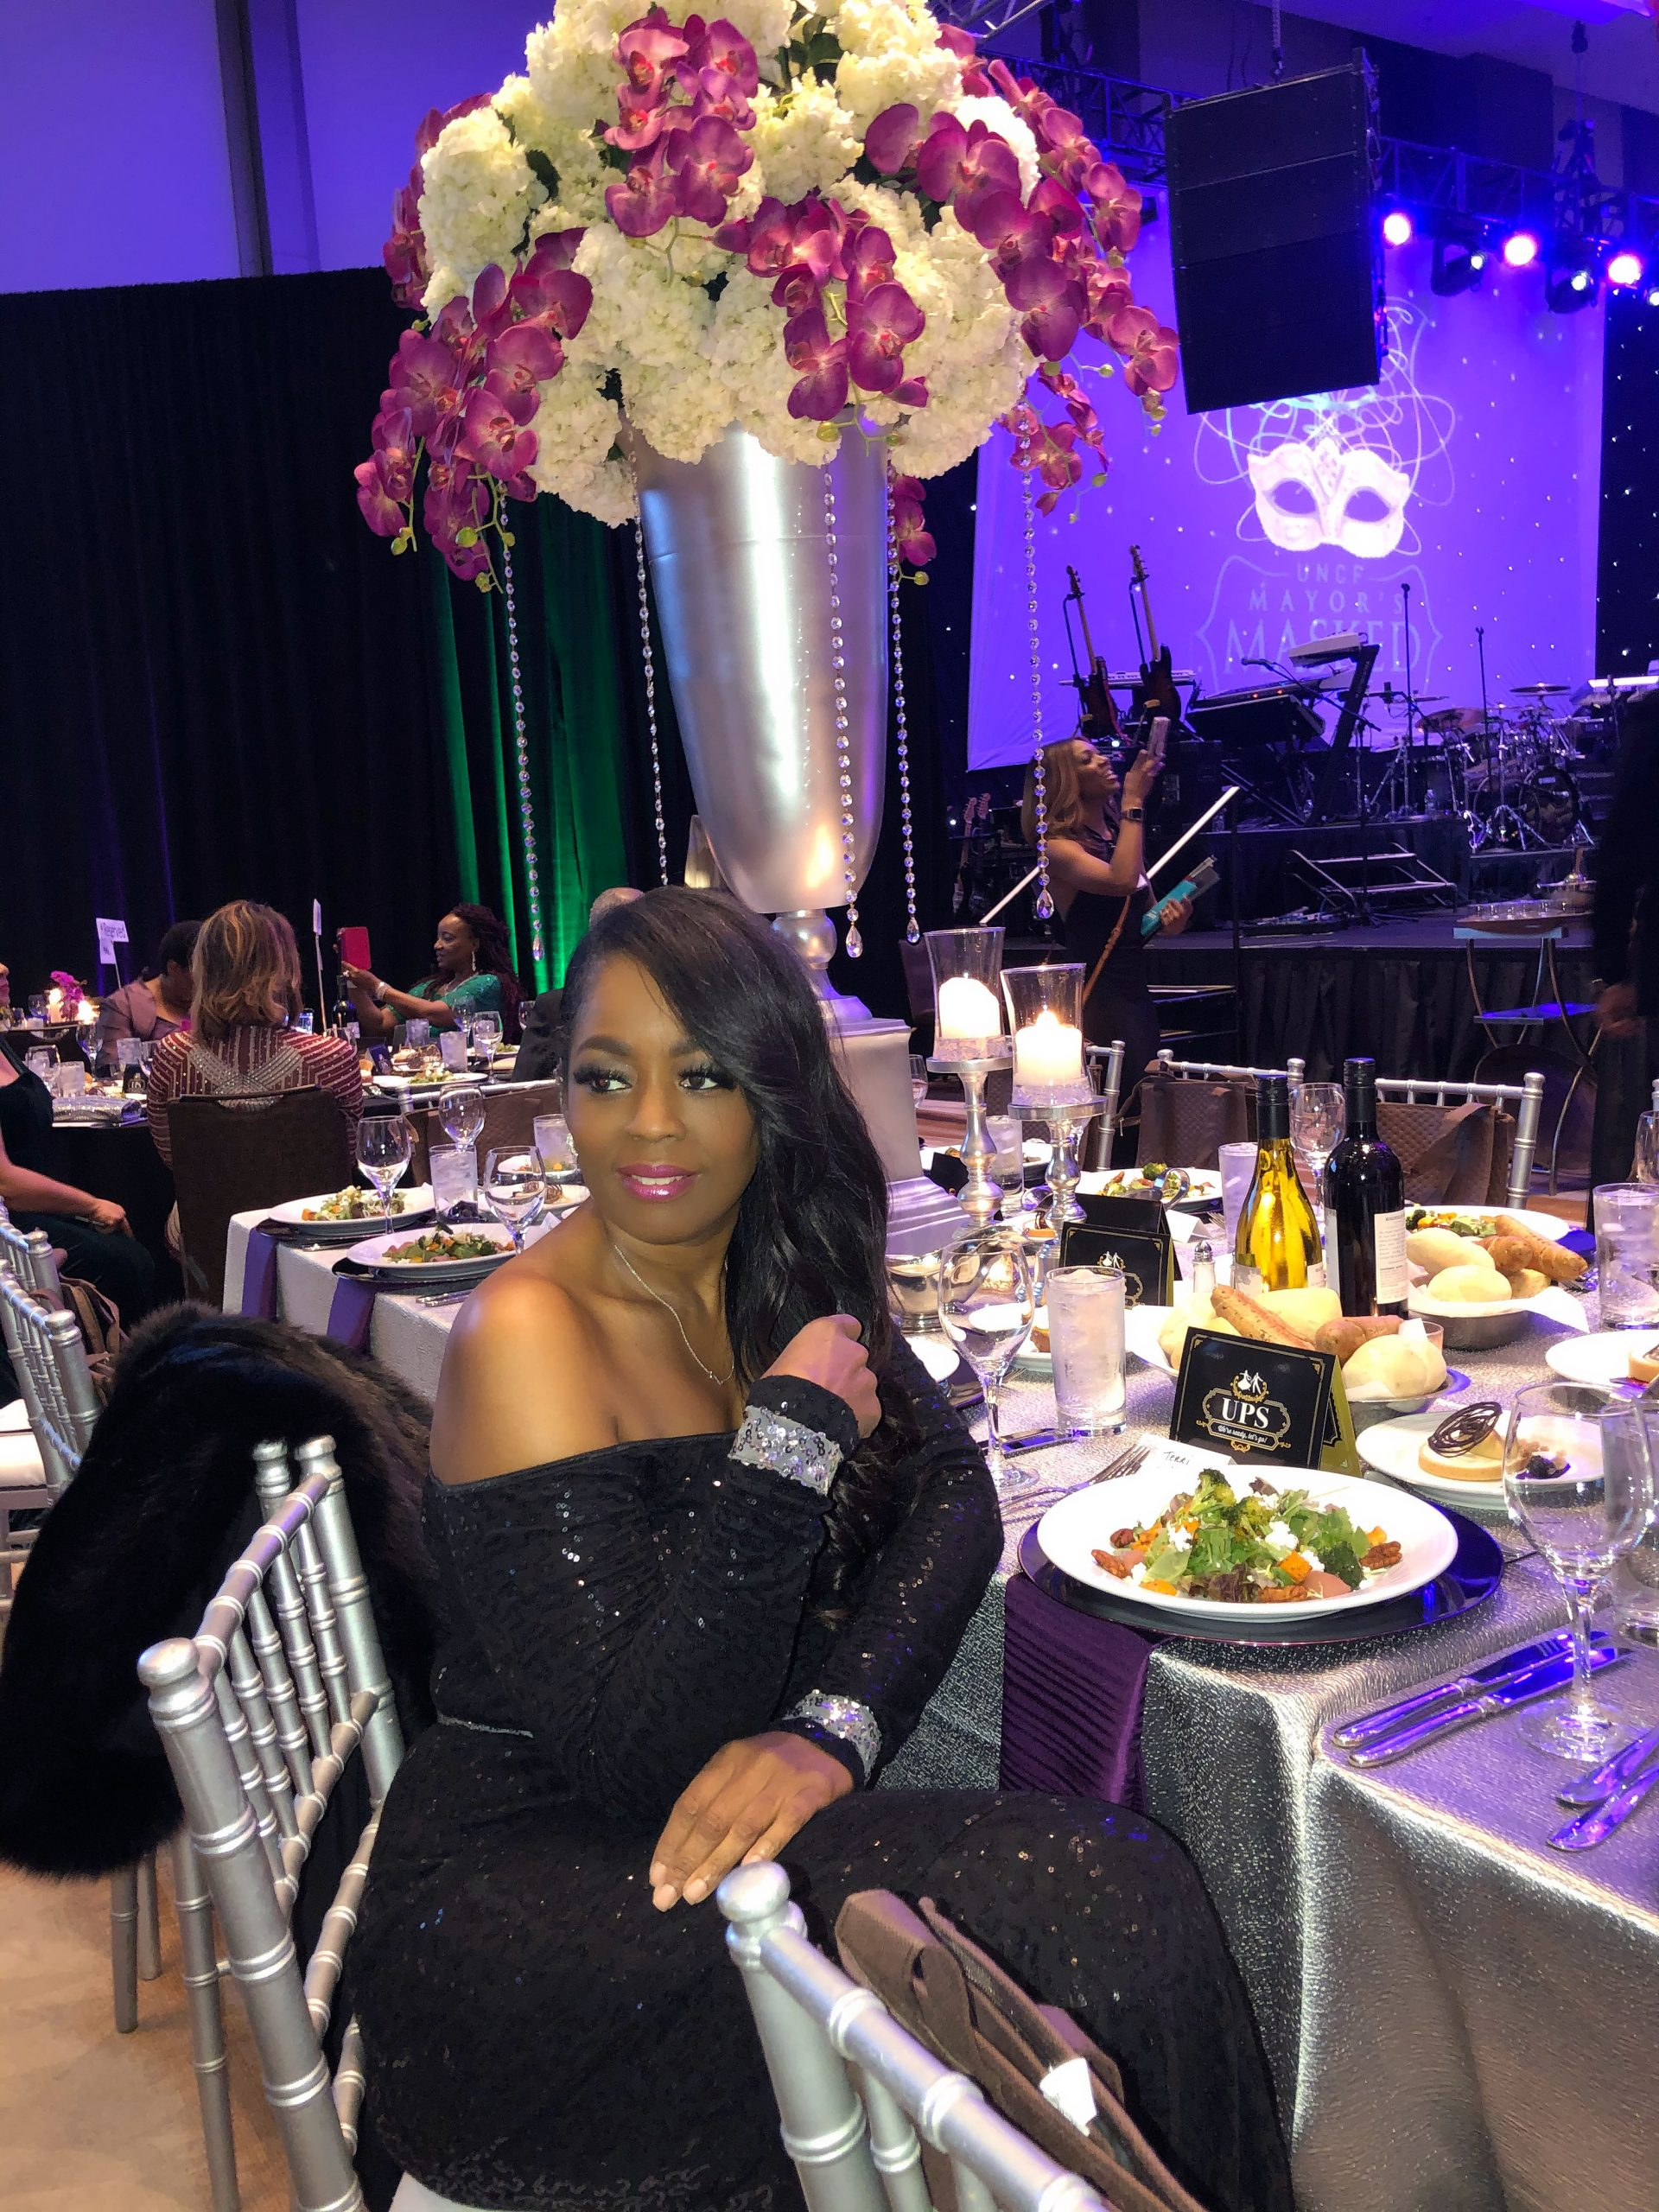 My Experience At The UNCF's 36th Annual Mayor's Masked Ball In Atlanta